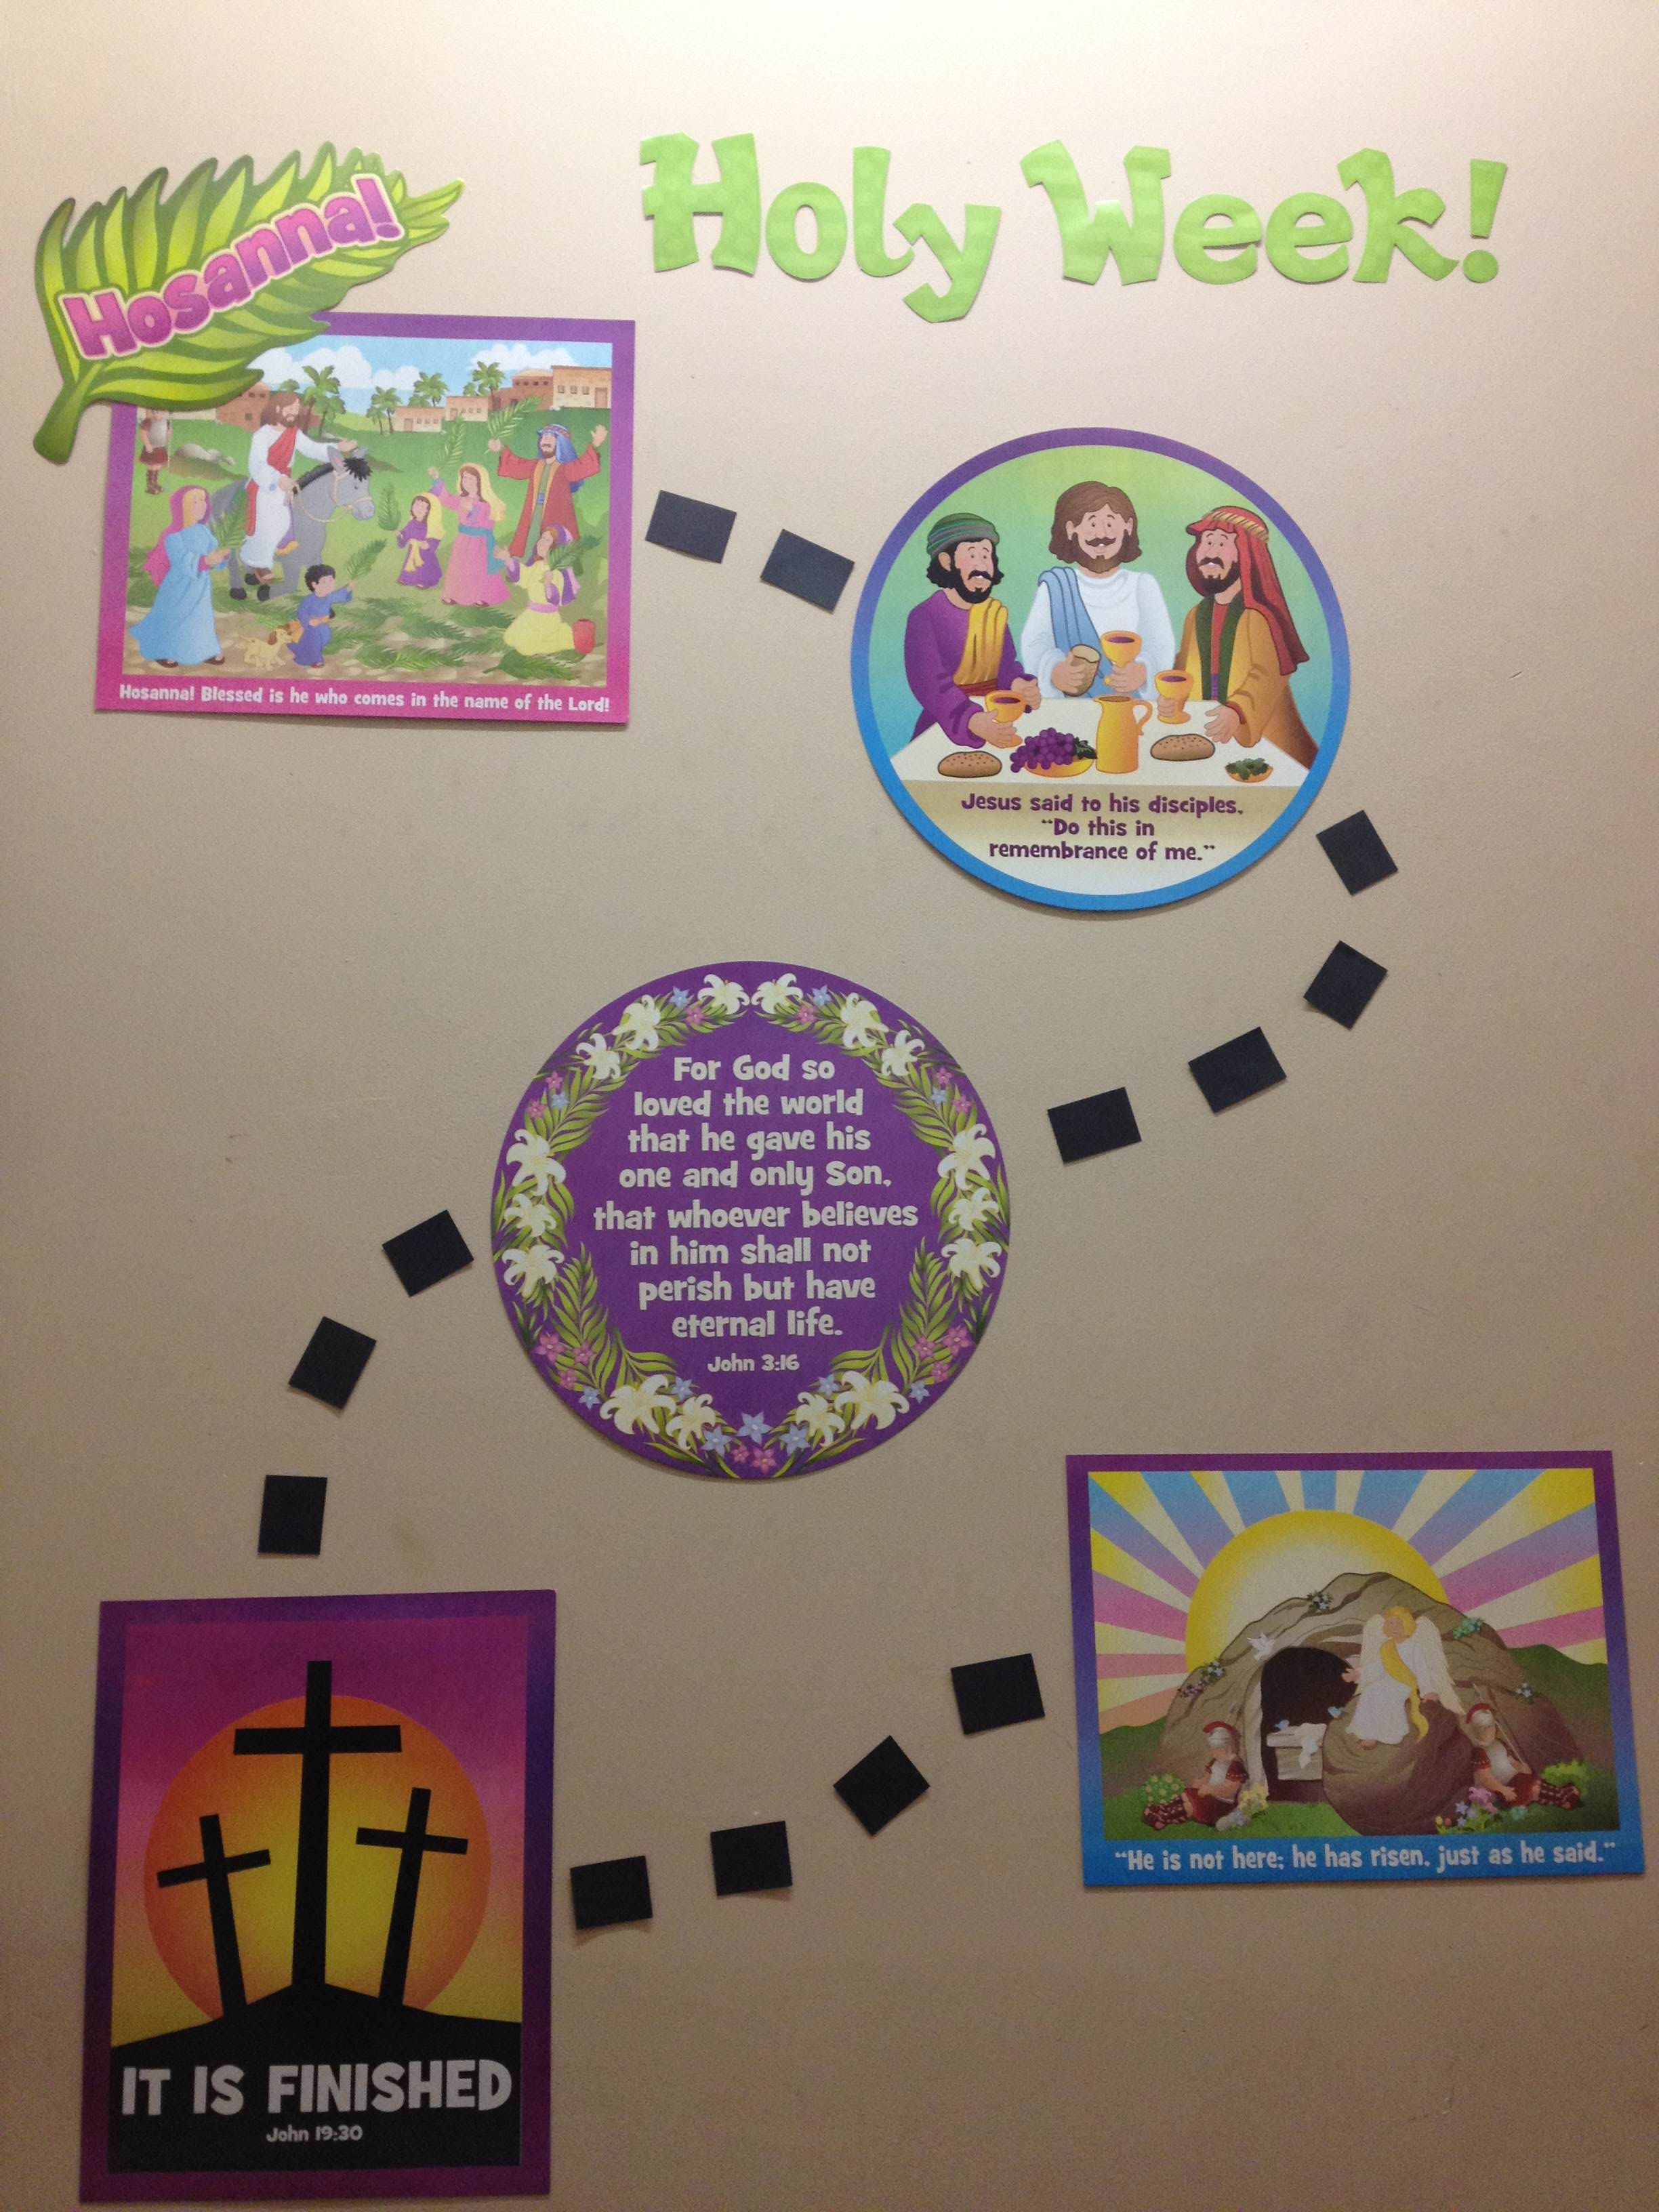 Christian easter bulletin board ideas - Explore Catholic Bulletin Boards And More